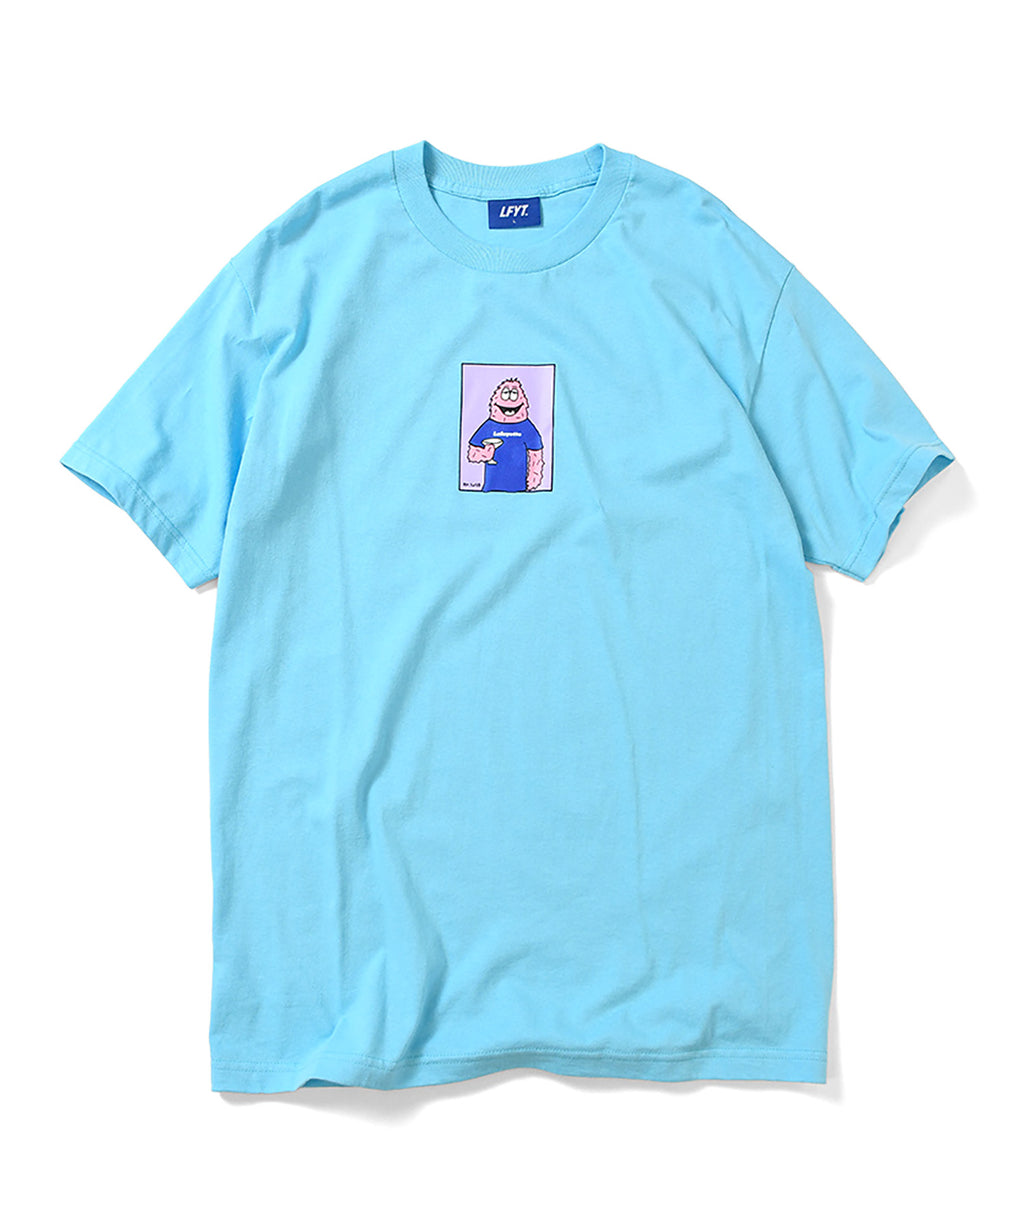 LFYT x Rabuns - CHEERS TEE LIGHT BLUE LA200104